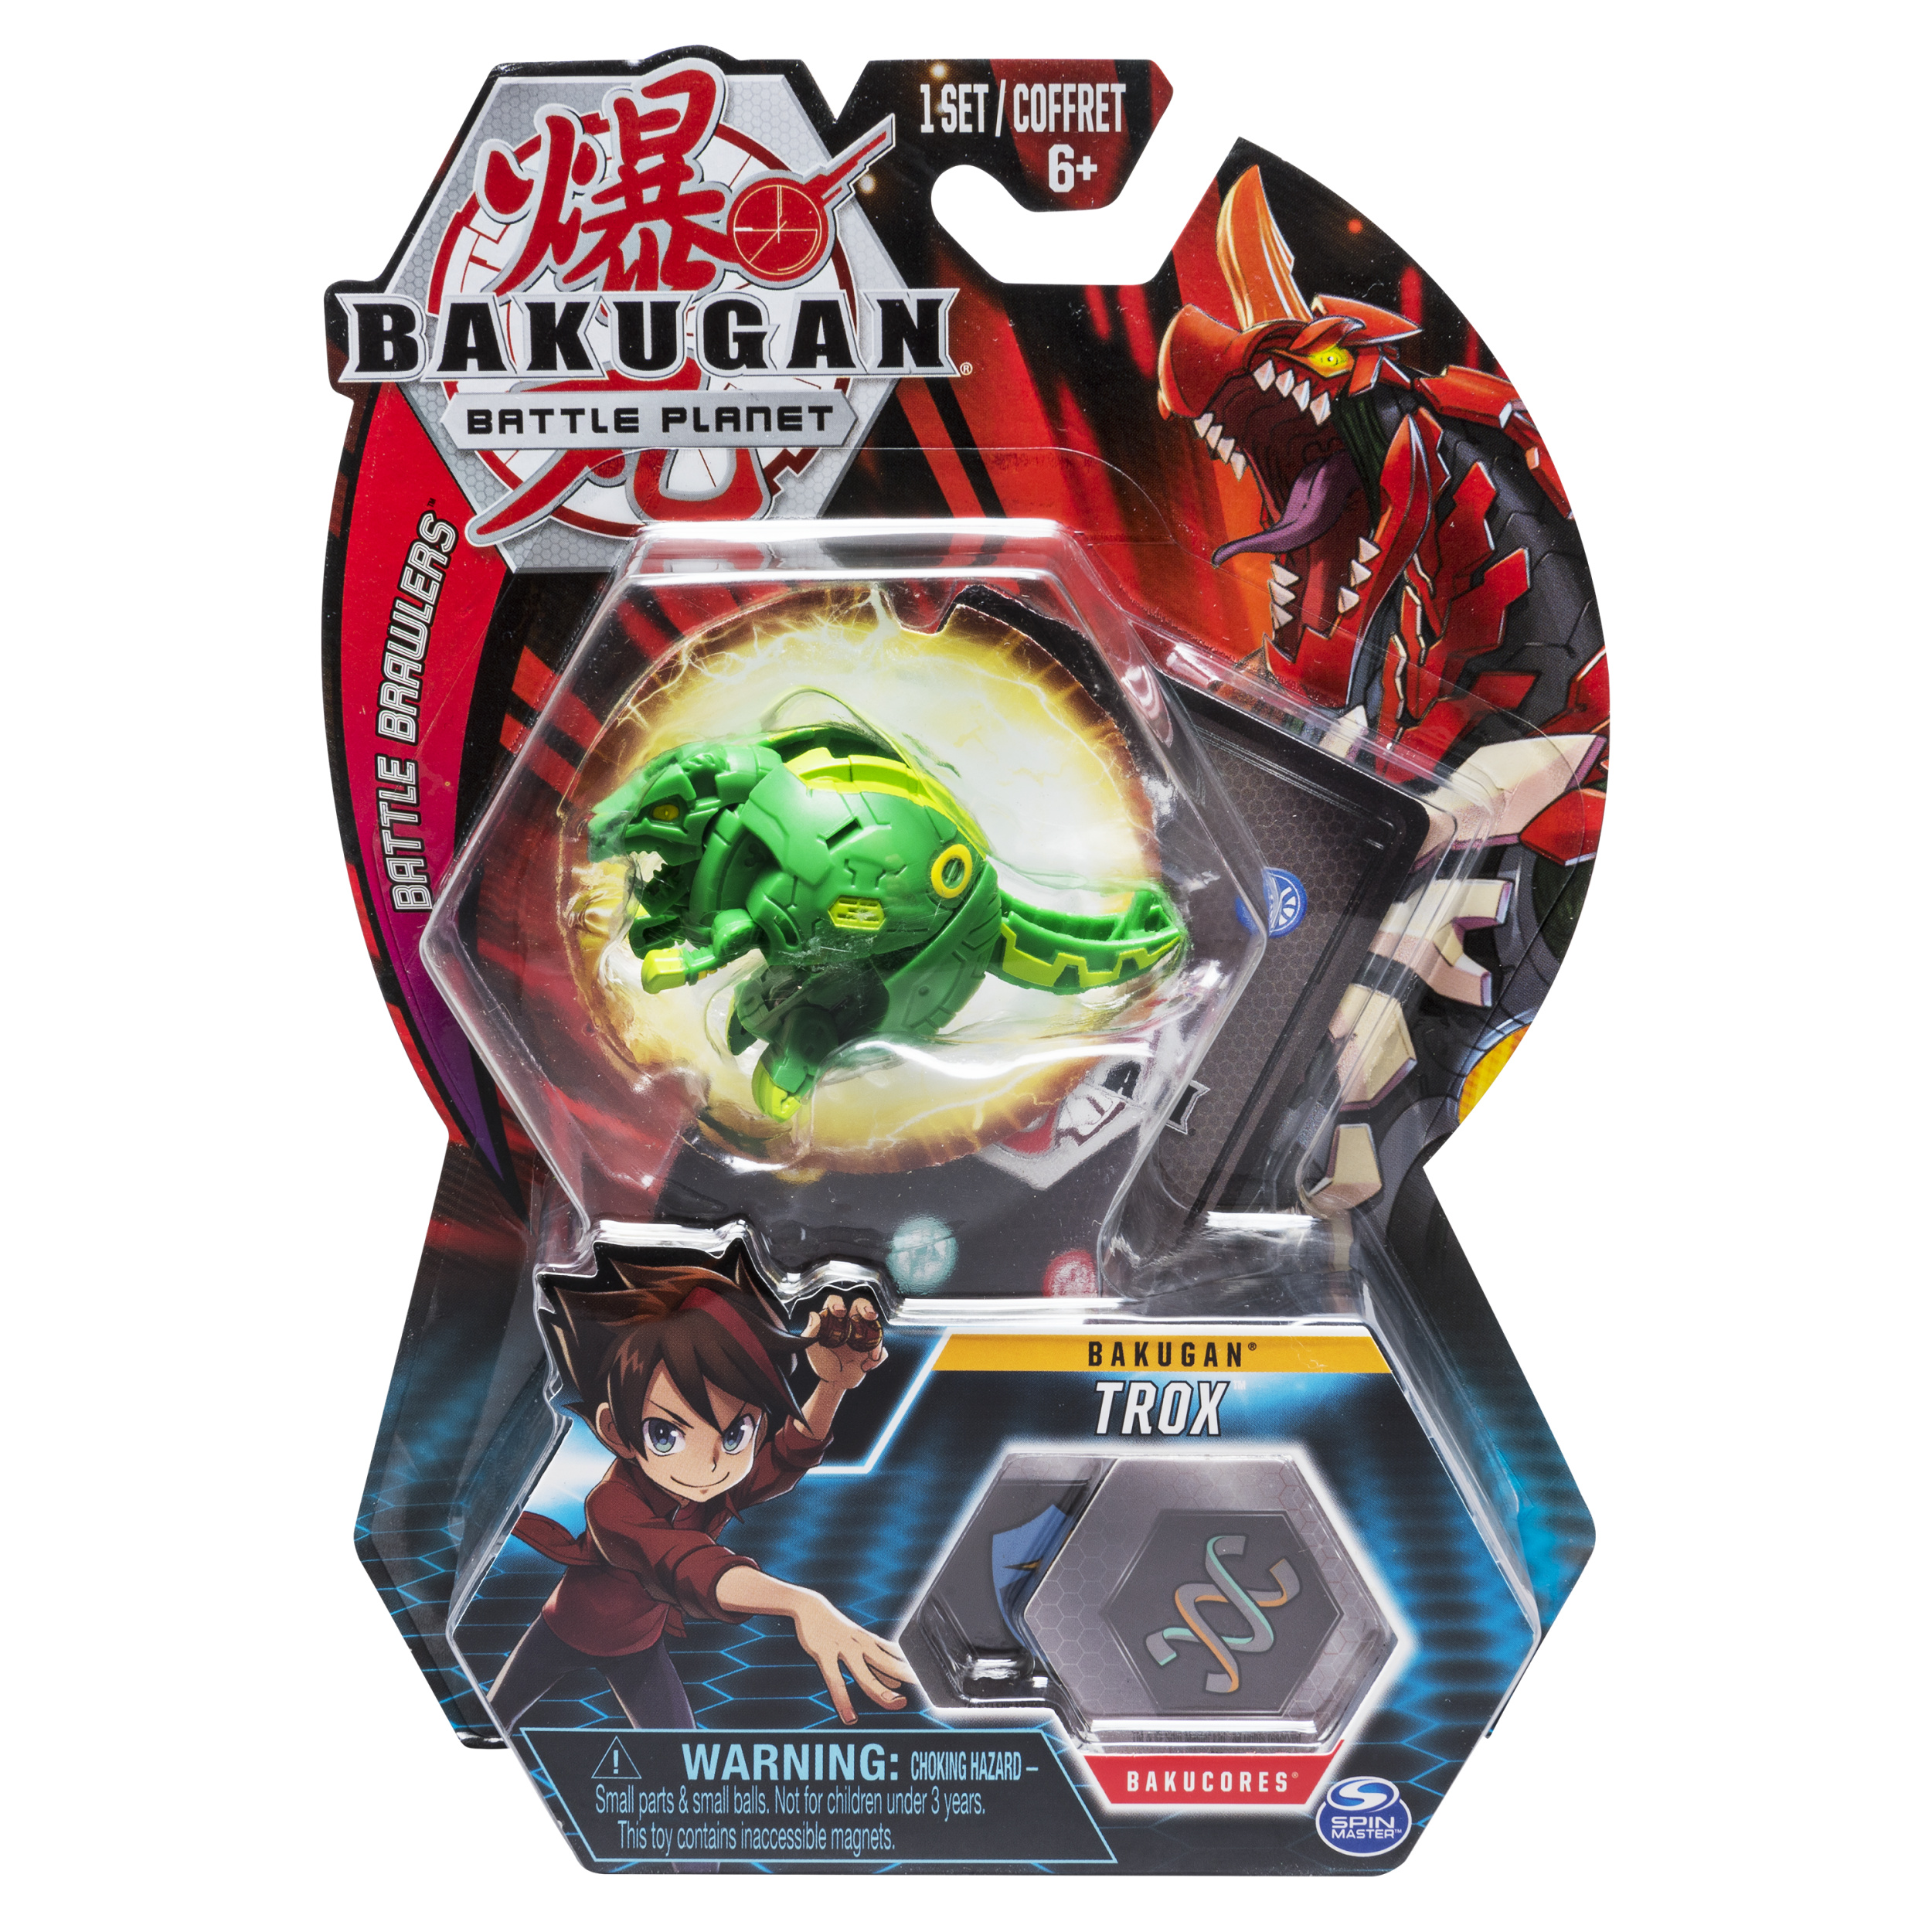 Bakugan, Trox, 2-inch Tall Collectible Transforming Creature, for Ages 6 and Up